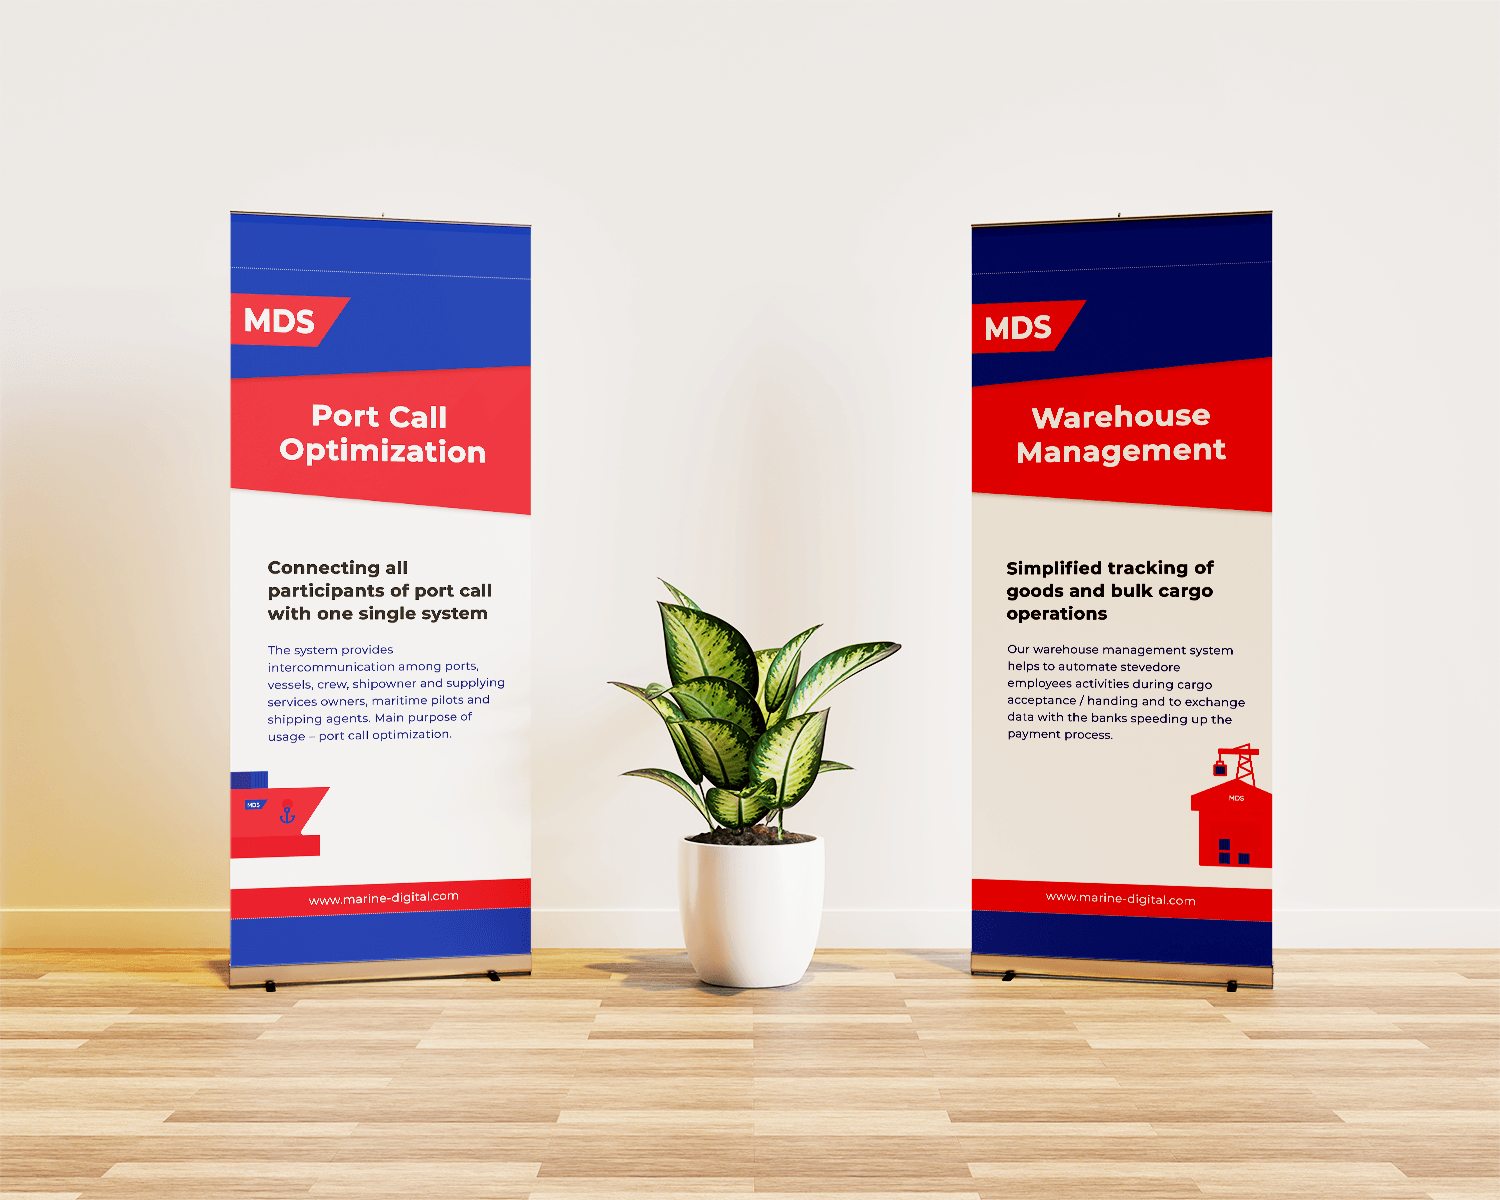 MDS – Roll up banners